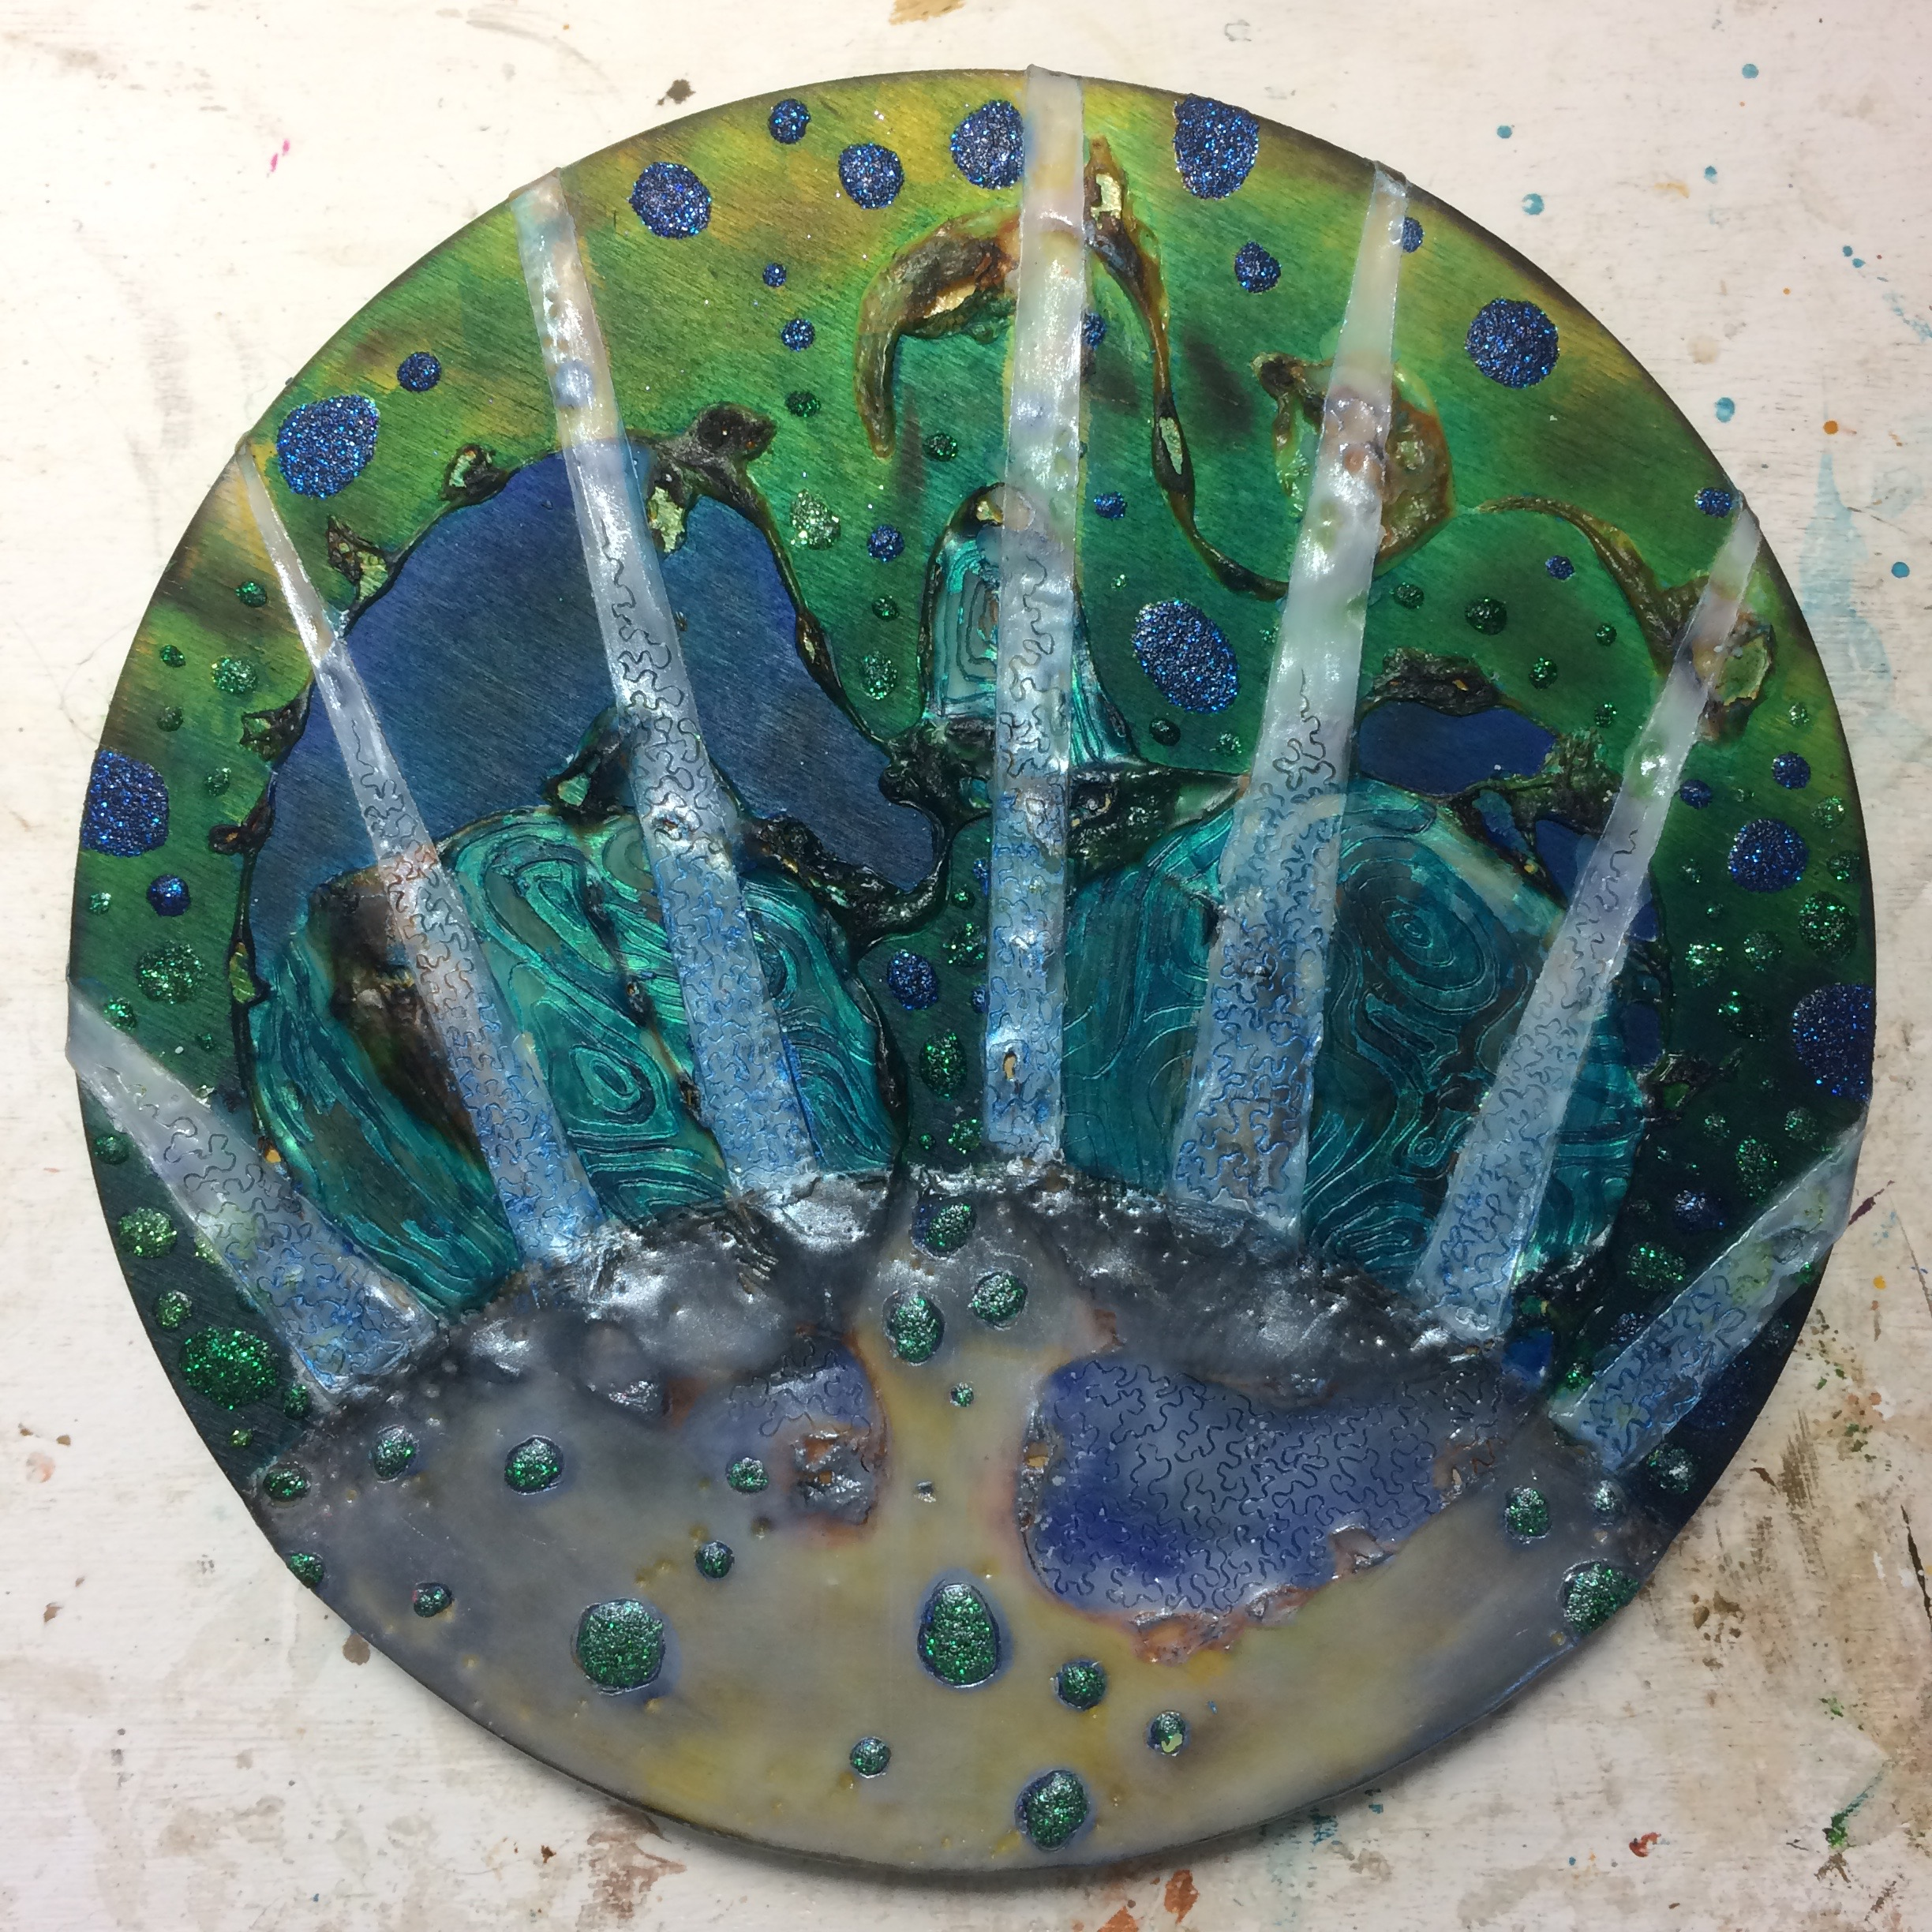 (A) Glaze of turquoise, iridescent over wax. (K) Scratched pattern into rays, blue oil stick. (A) Carved pebbles into wax.